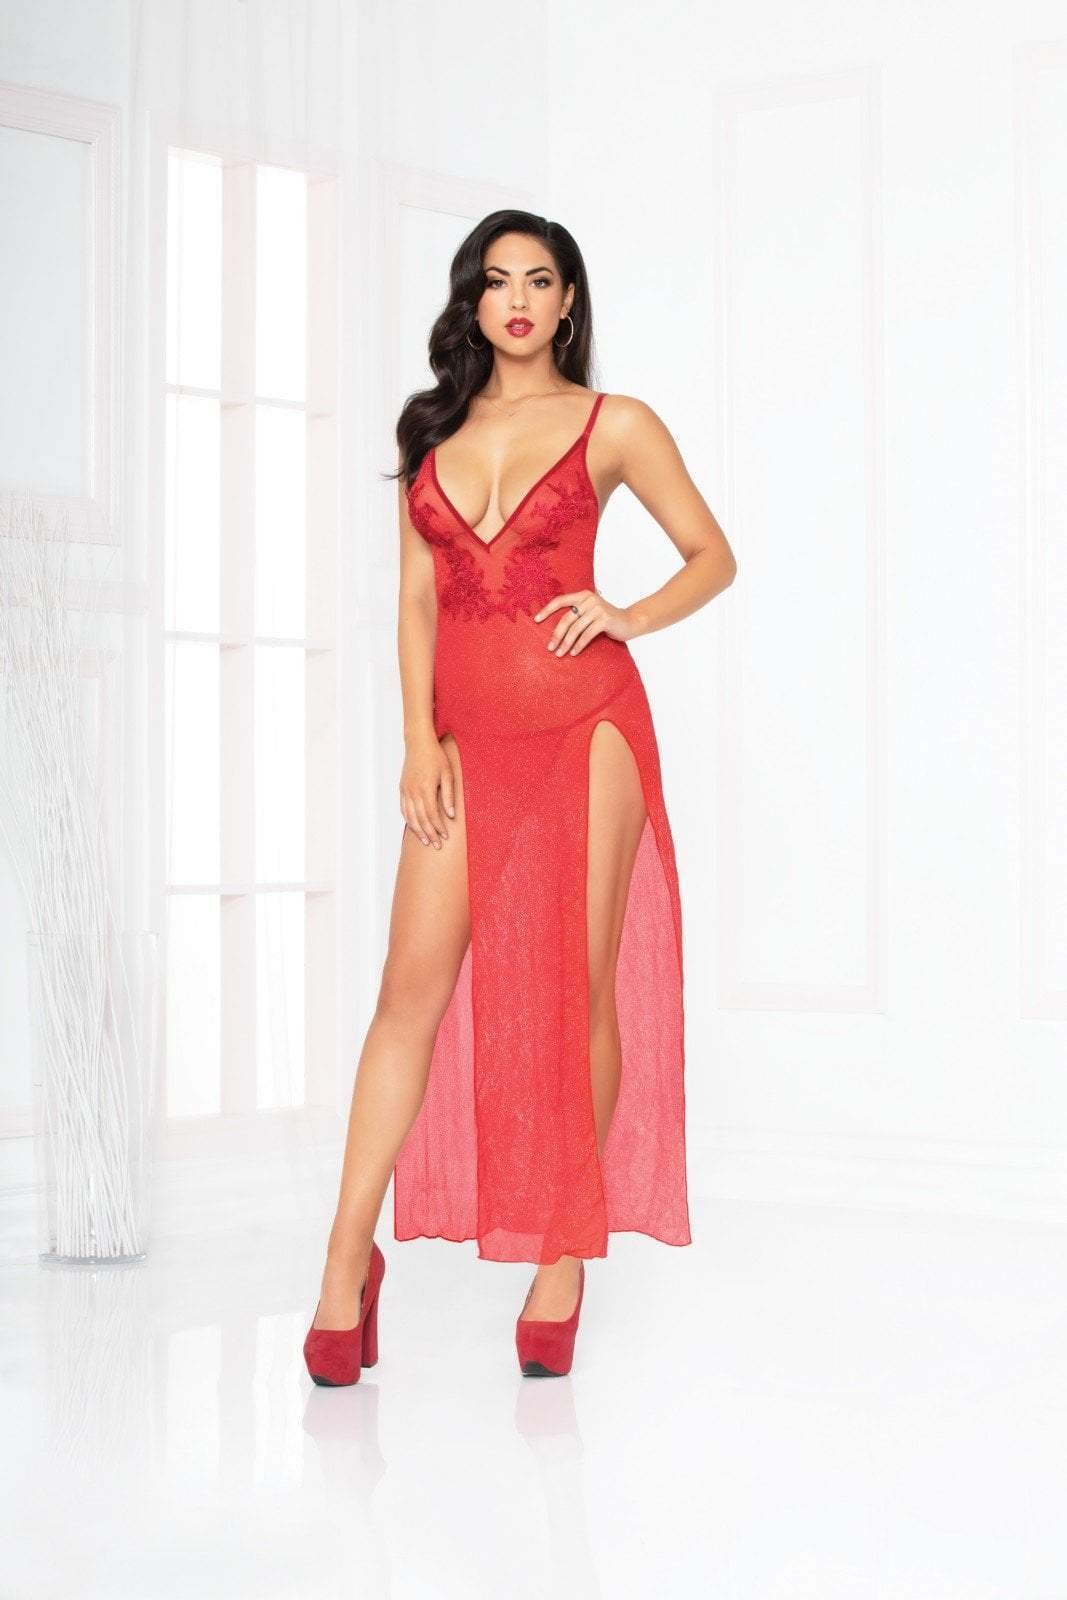 seven til midnight Seven til Midnight Chemise All That Glitters Gown Set Red